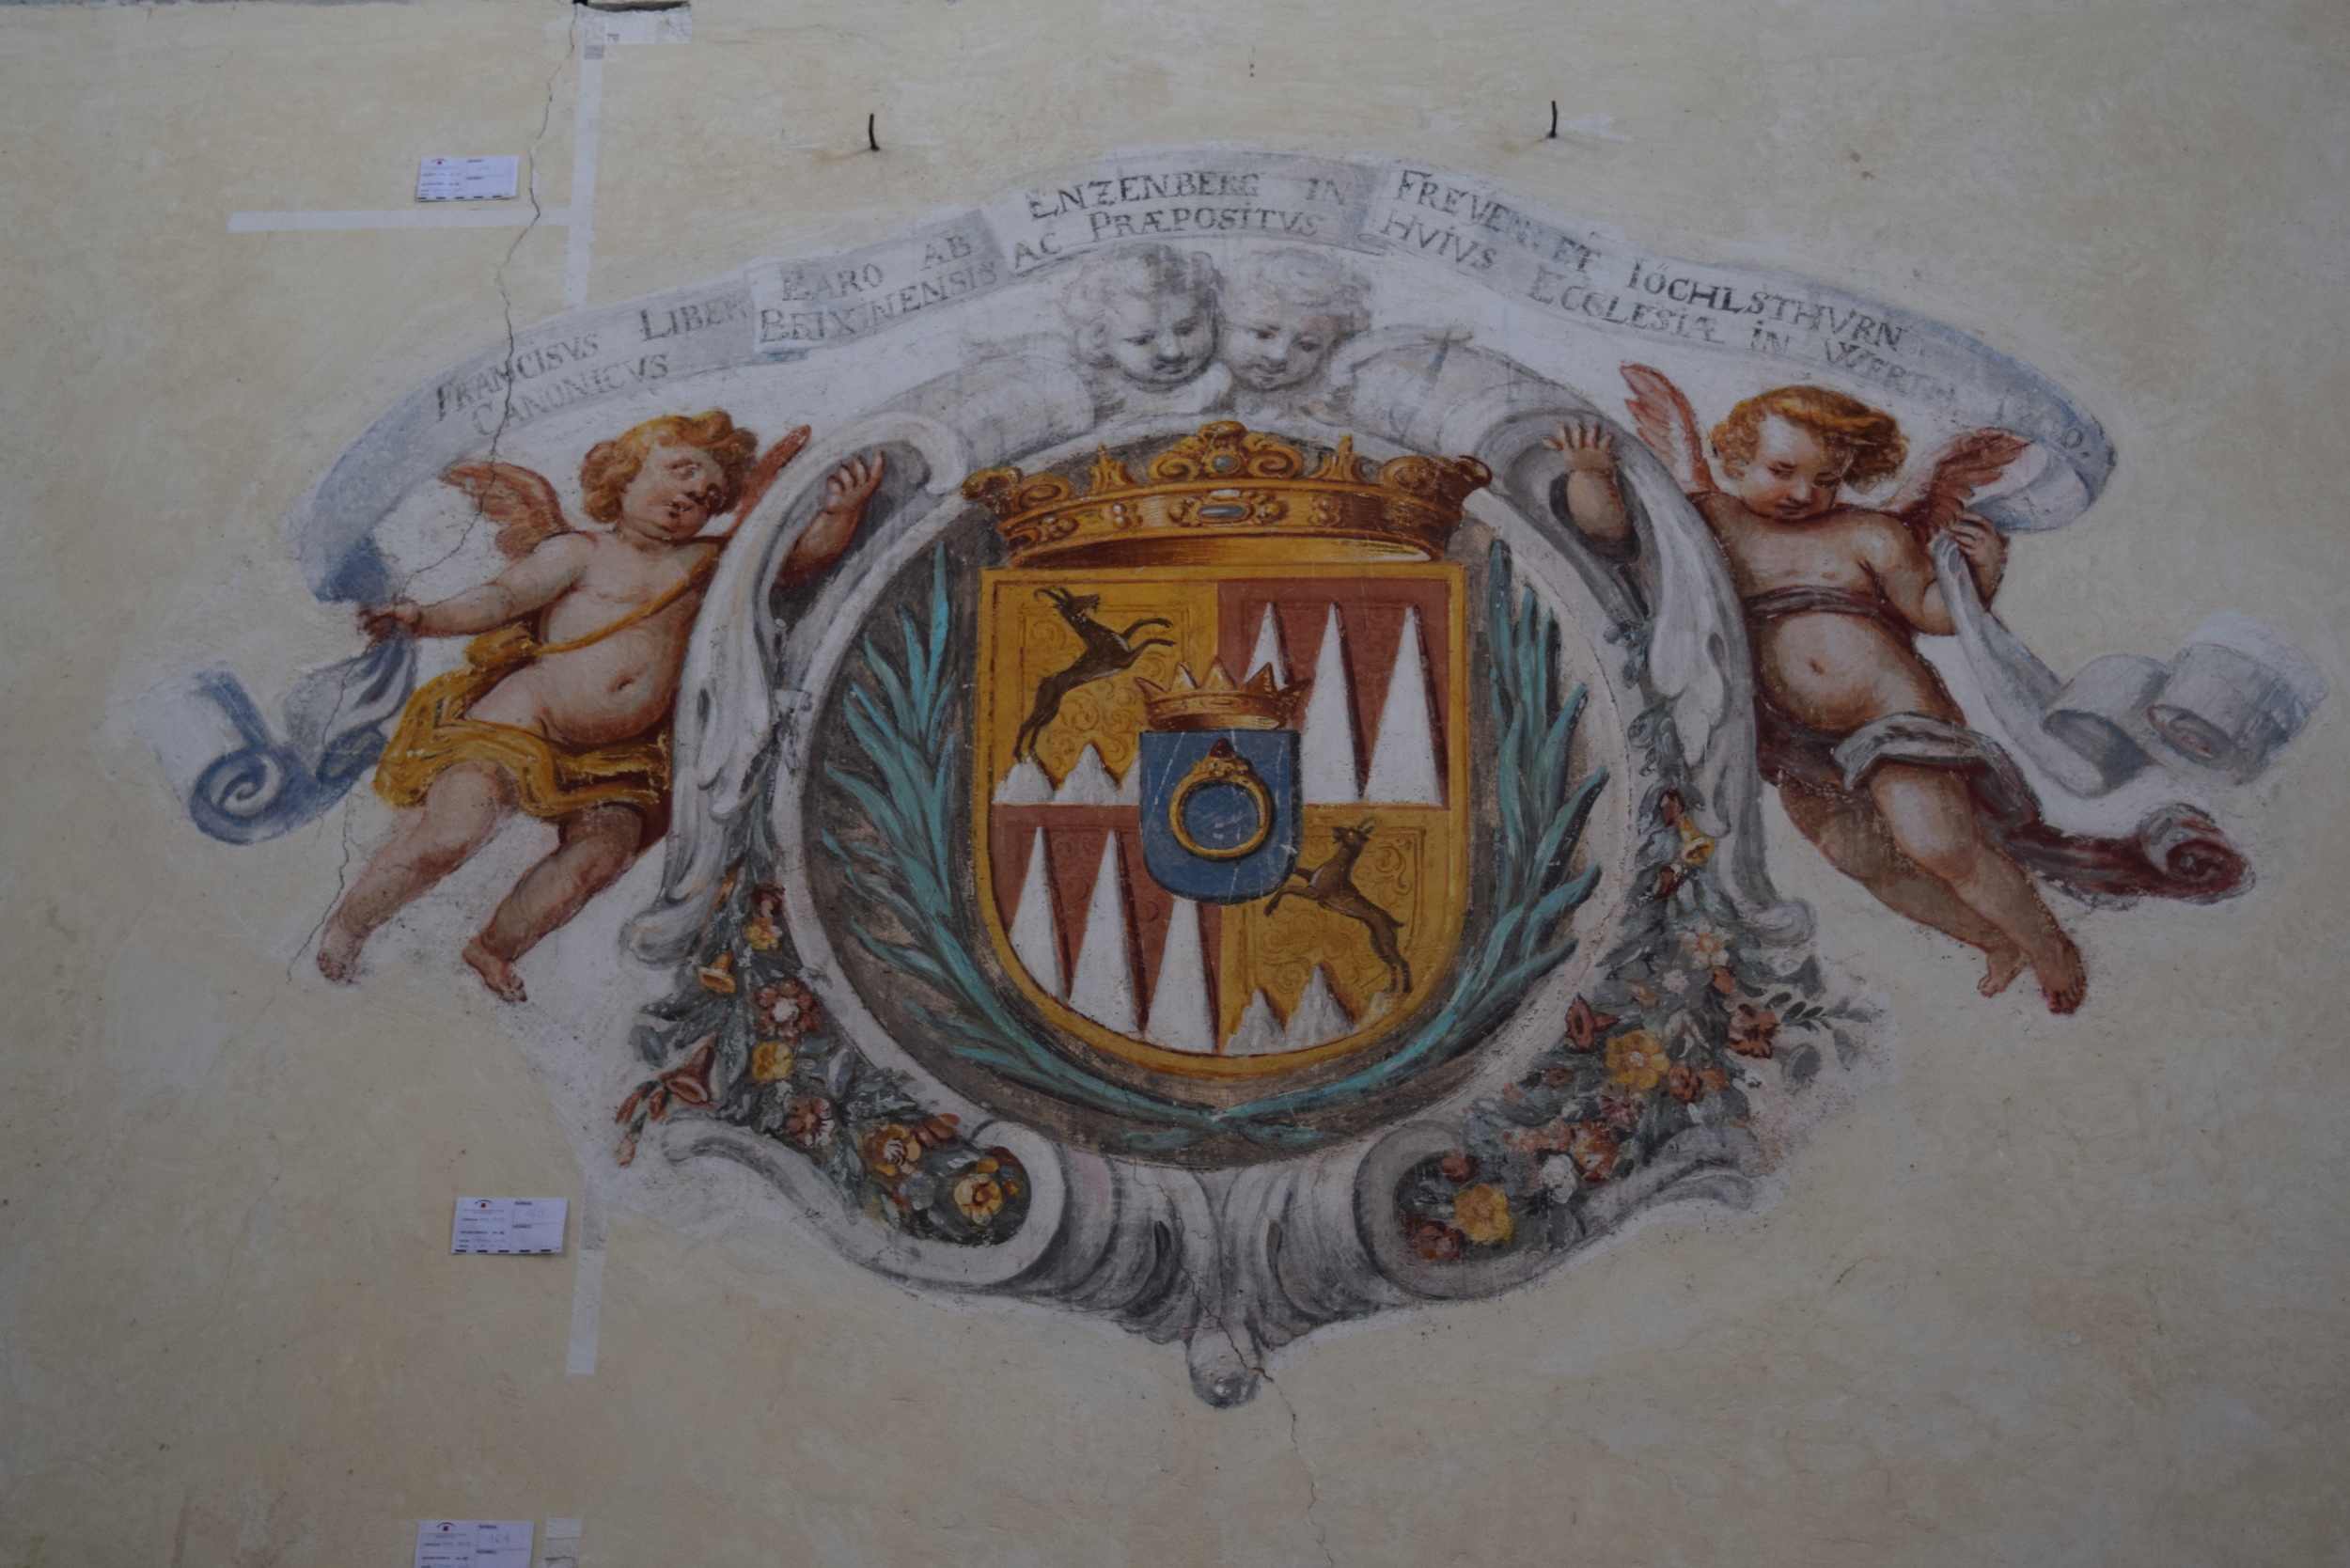 Church fresco displaying the coat of arms of a benefactor